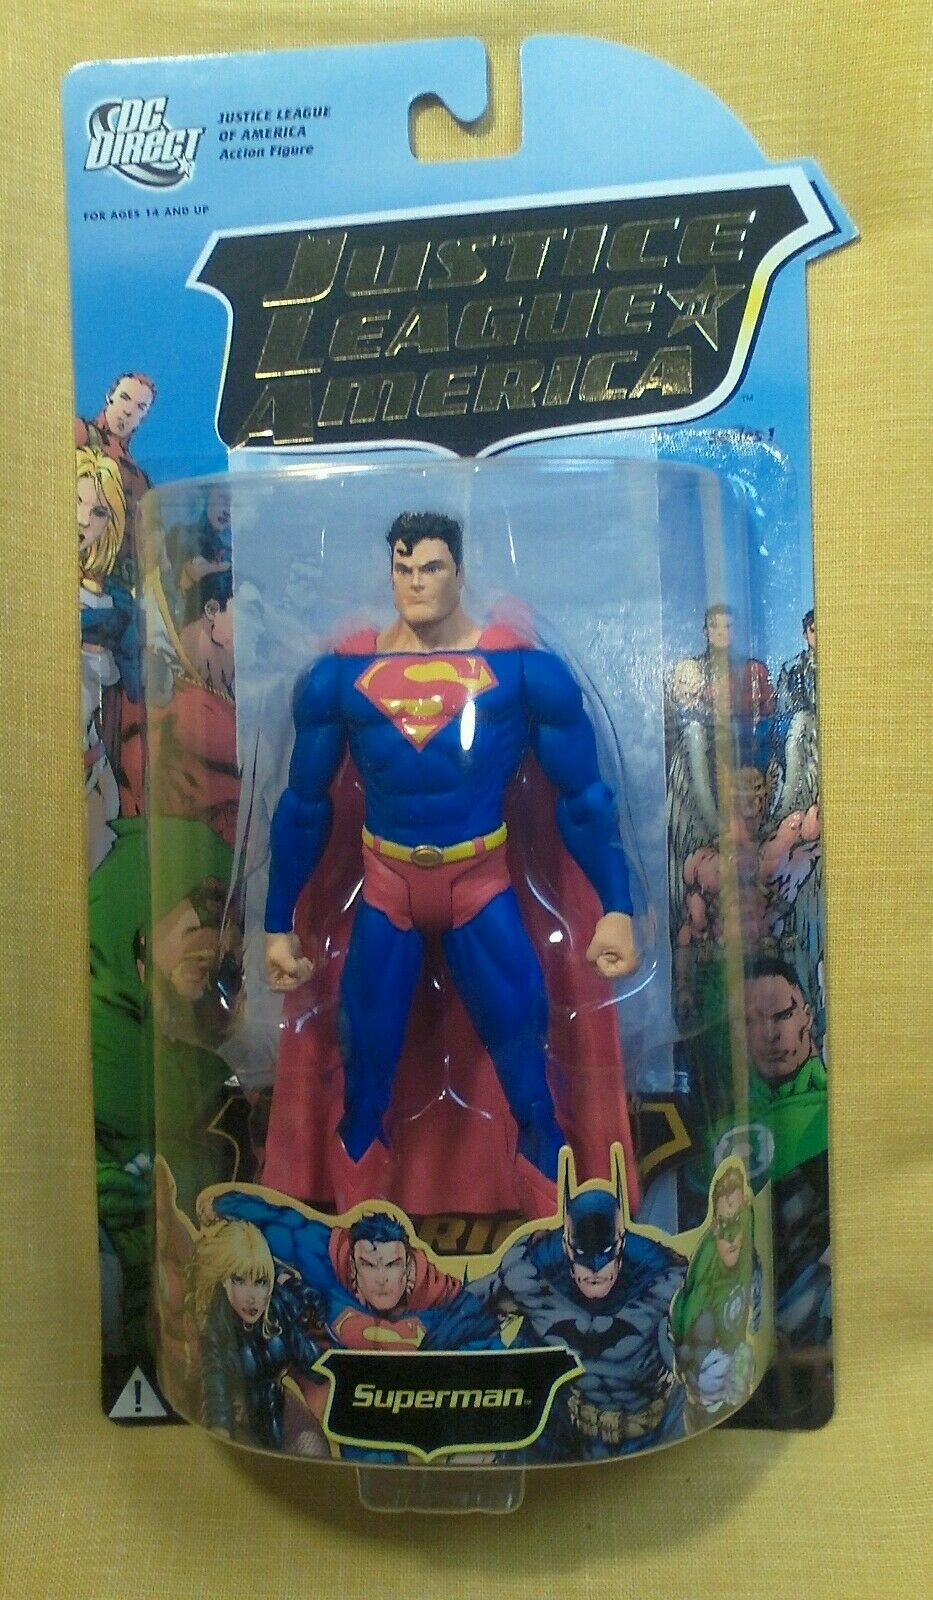 SUPERMAN JUSTICE LEAGUE OF AMERICA Action Figure DC Direct MISP SERIES 1 NRFB